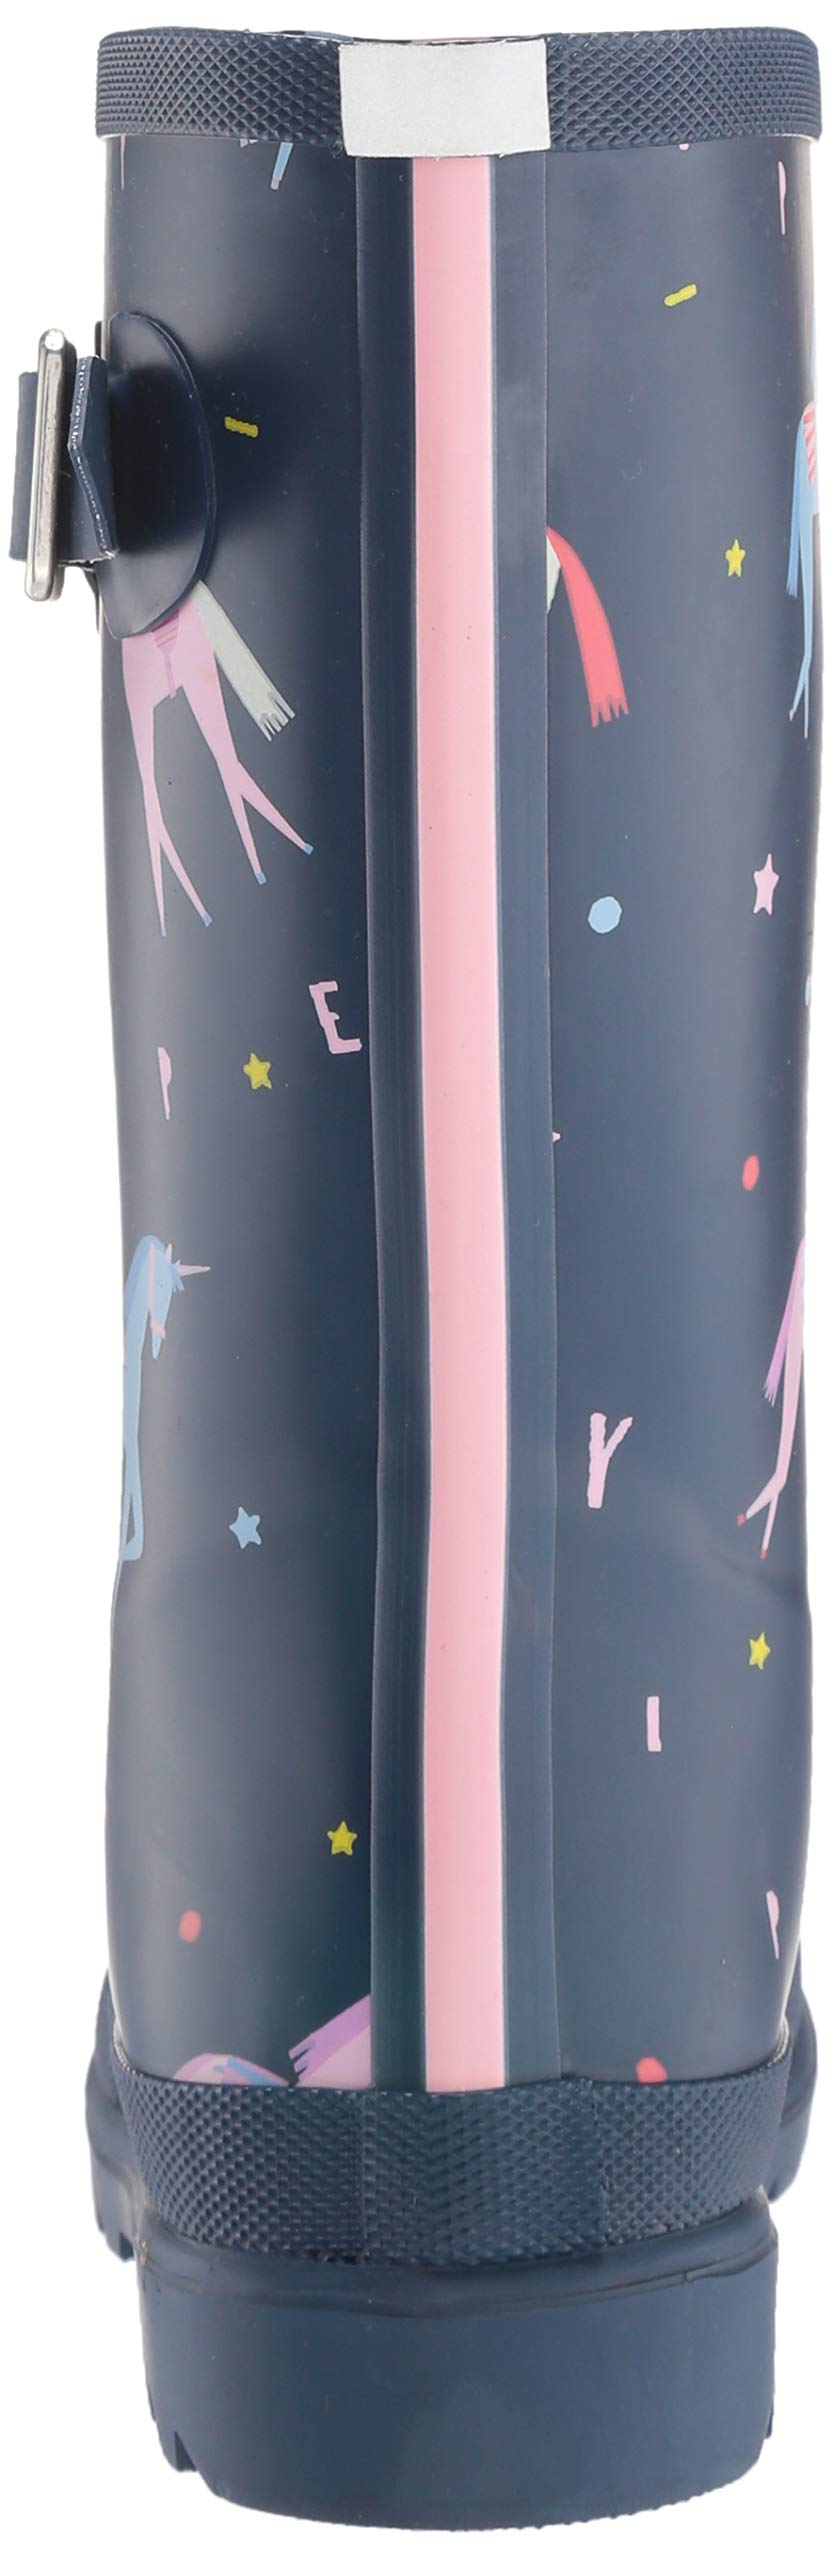 Joules Girls' JNR Welly Print Rain Boot, Blue Unicorn, 3 M US Little Kid by Joules (Image #2)